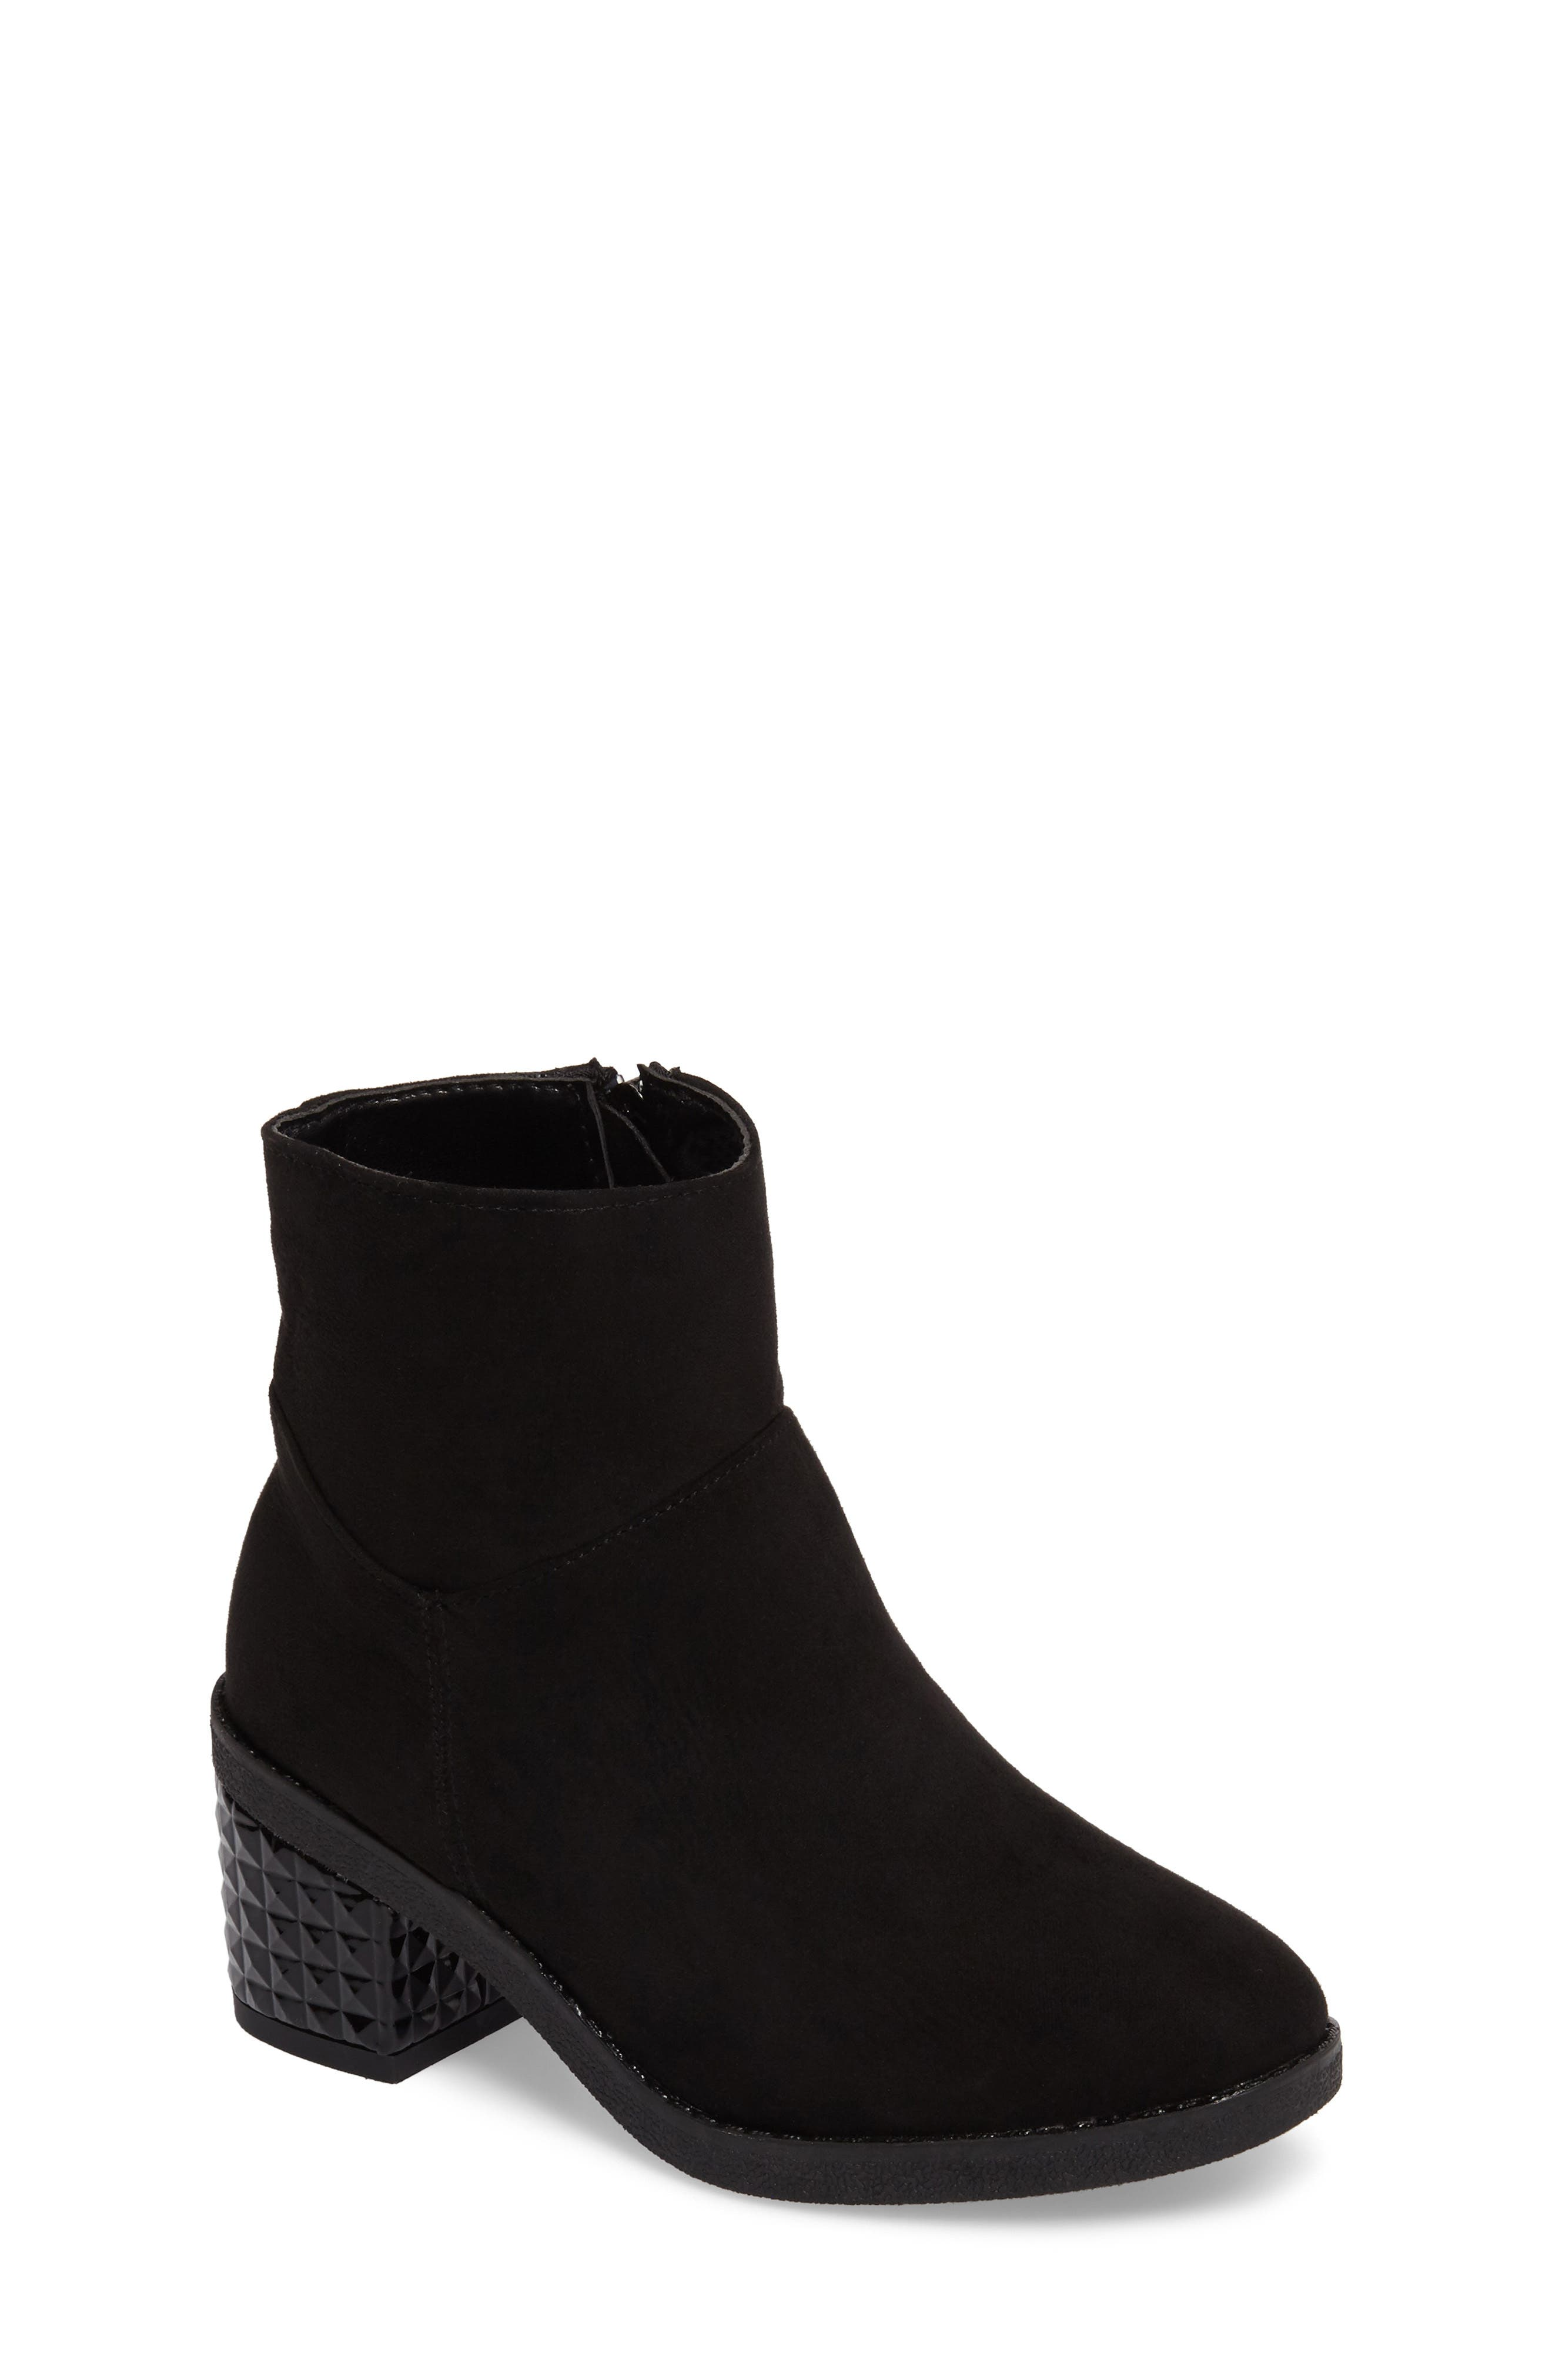 Fawn Dawn Bootie,                         Main,                         color, Black